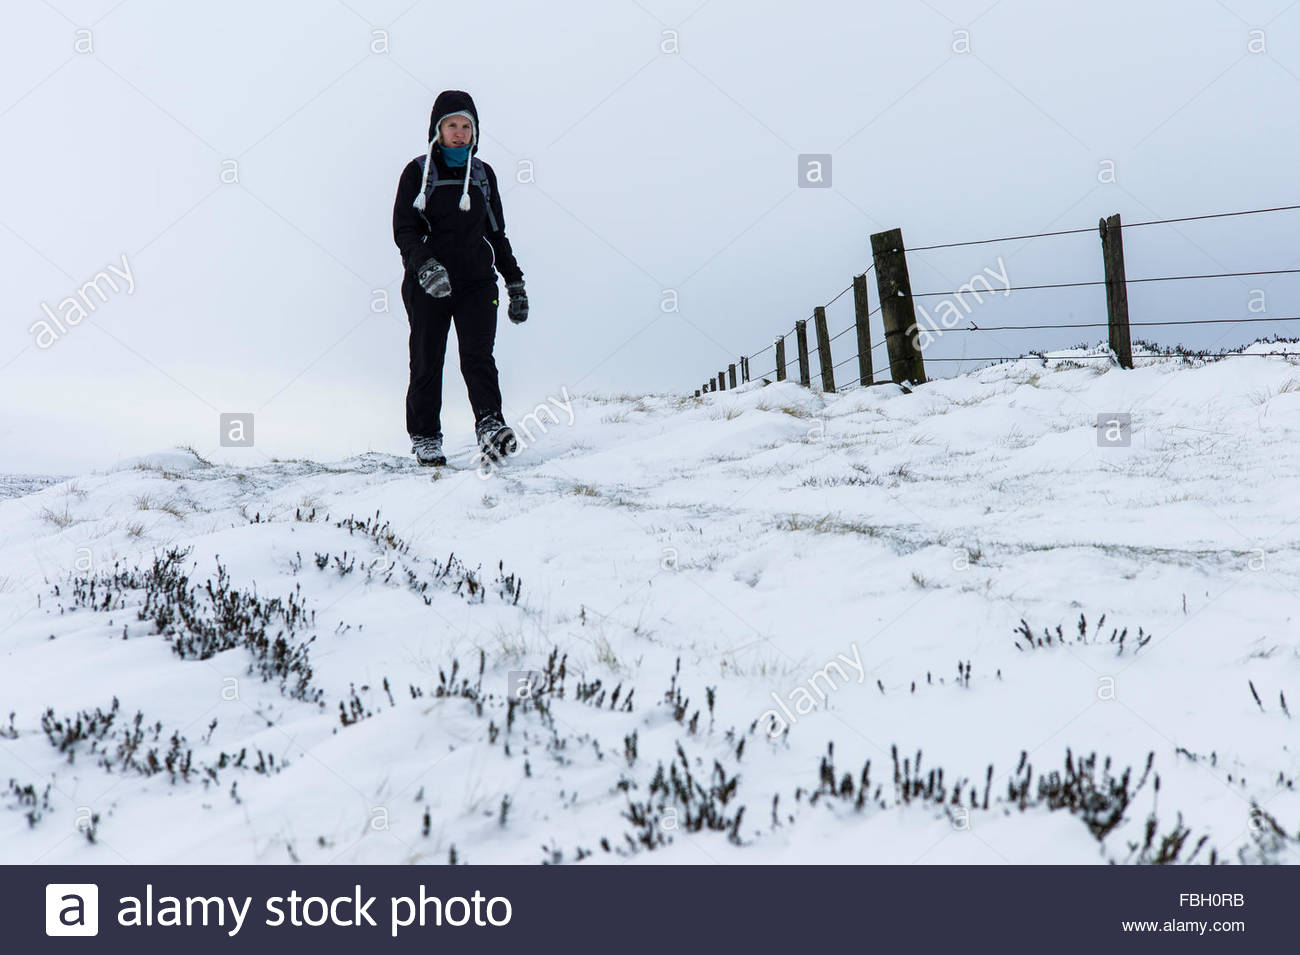 Mozie Law, Wooler, Northumberland, UK. 16th January 2016. Hill walkers on the Pennine Way just inside the English - Stock Image